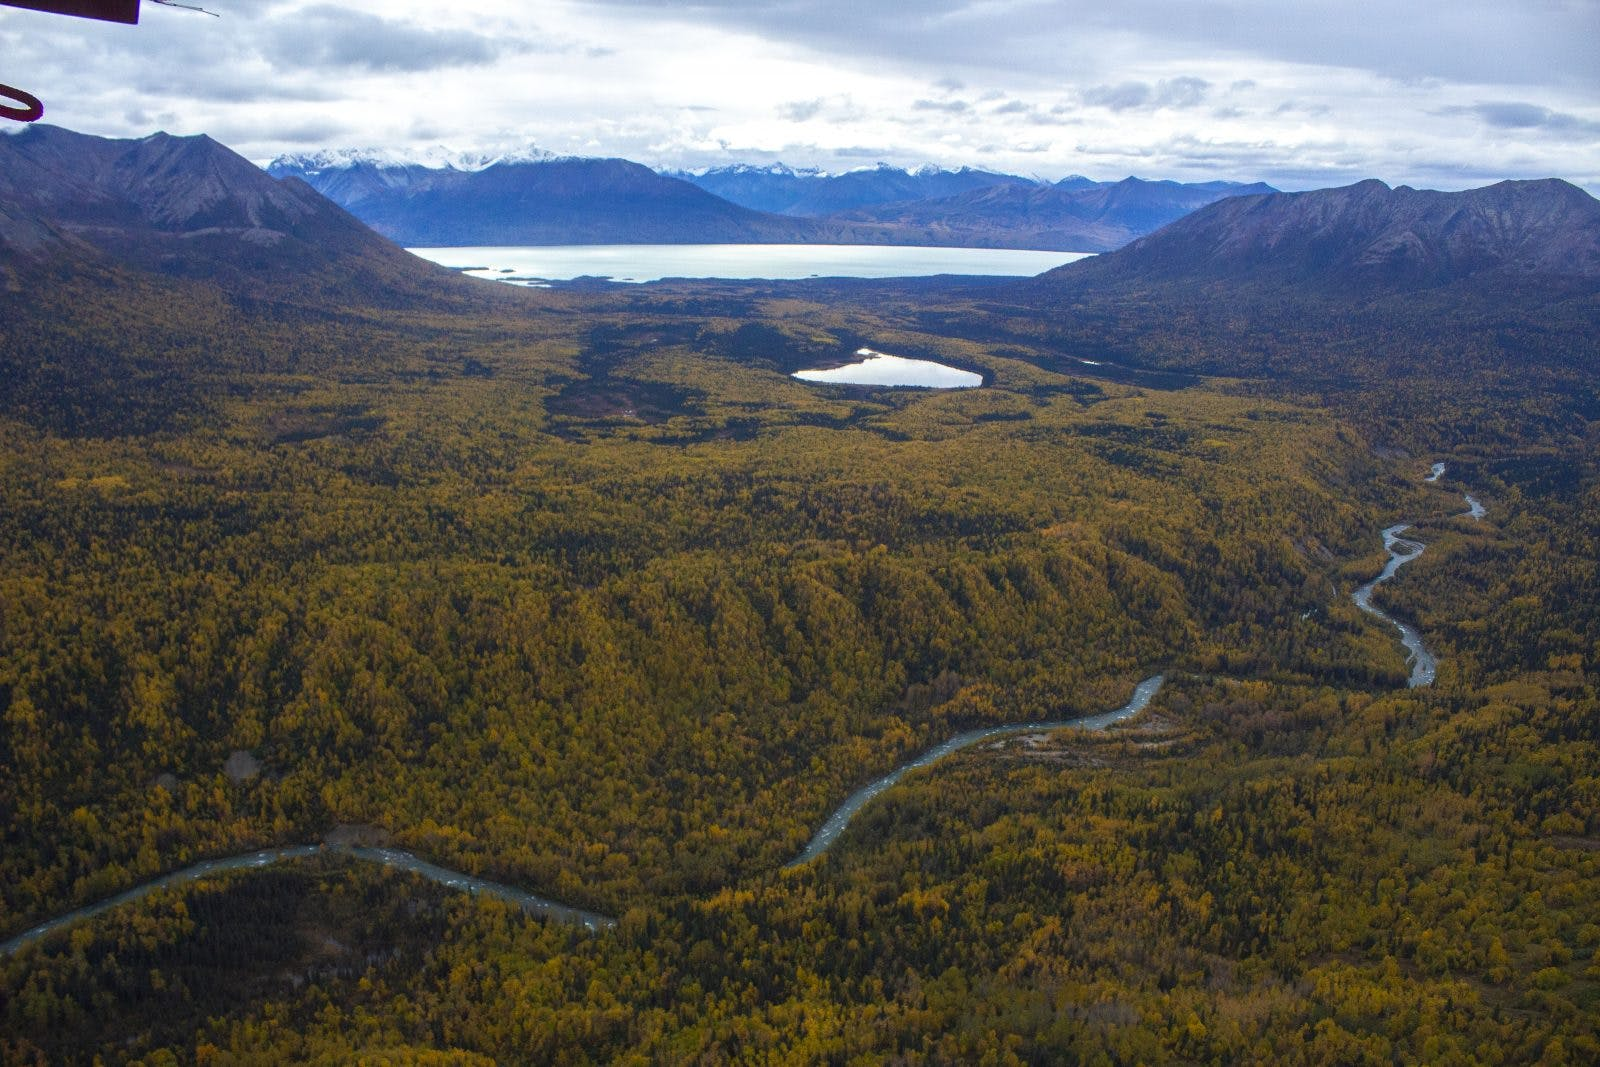 Packrafting potential near Lake Clark, as seen by bush plane. Photo by: Sam Carter